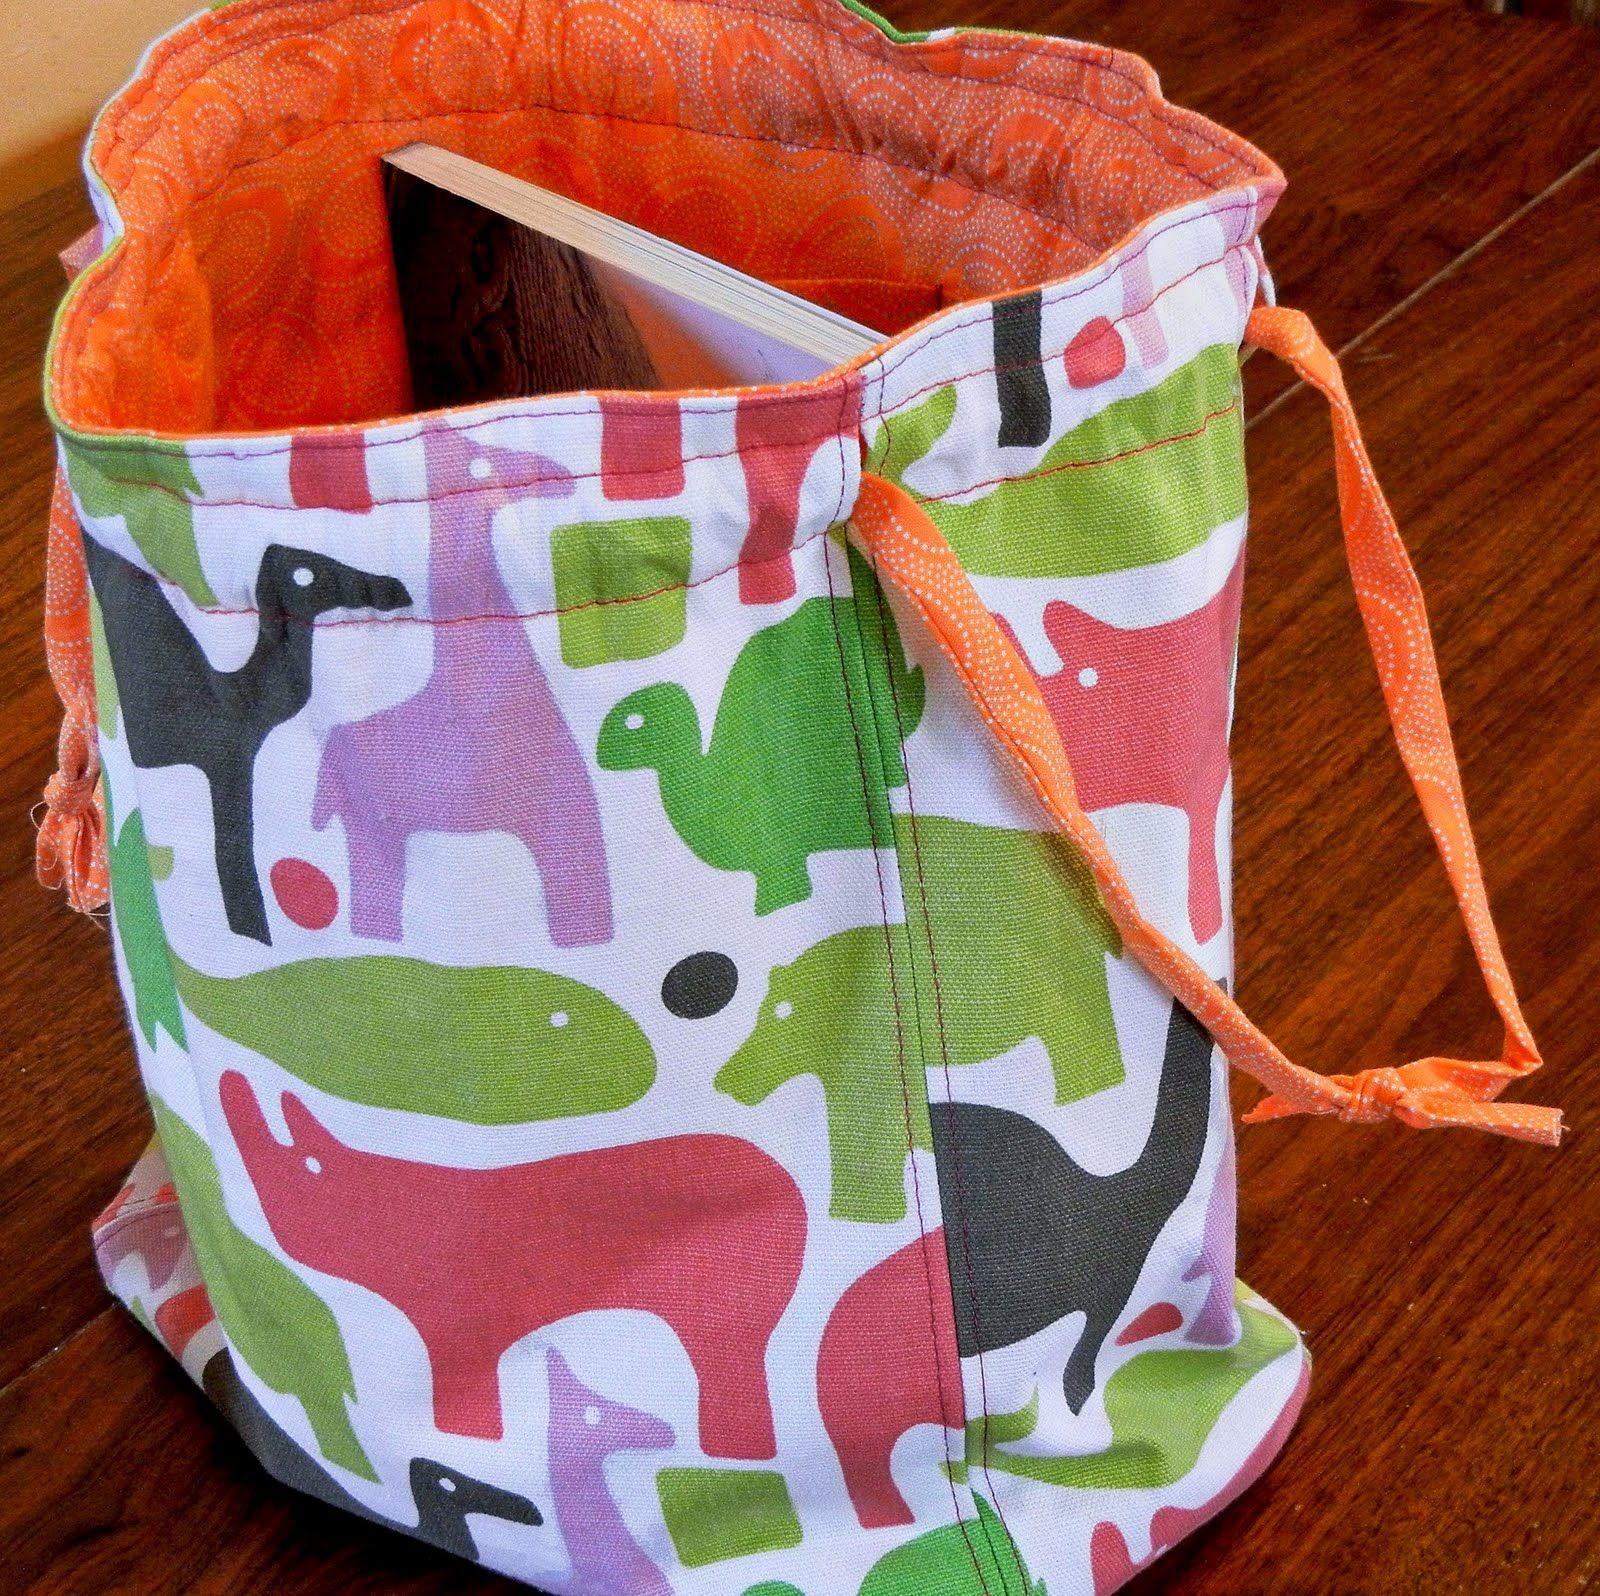 Knitting Bag Patterns To Sew : Knitting bag tutorial perfect project for